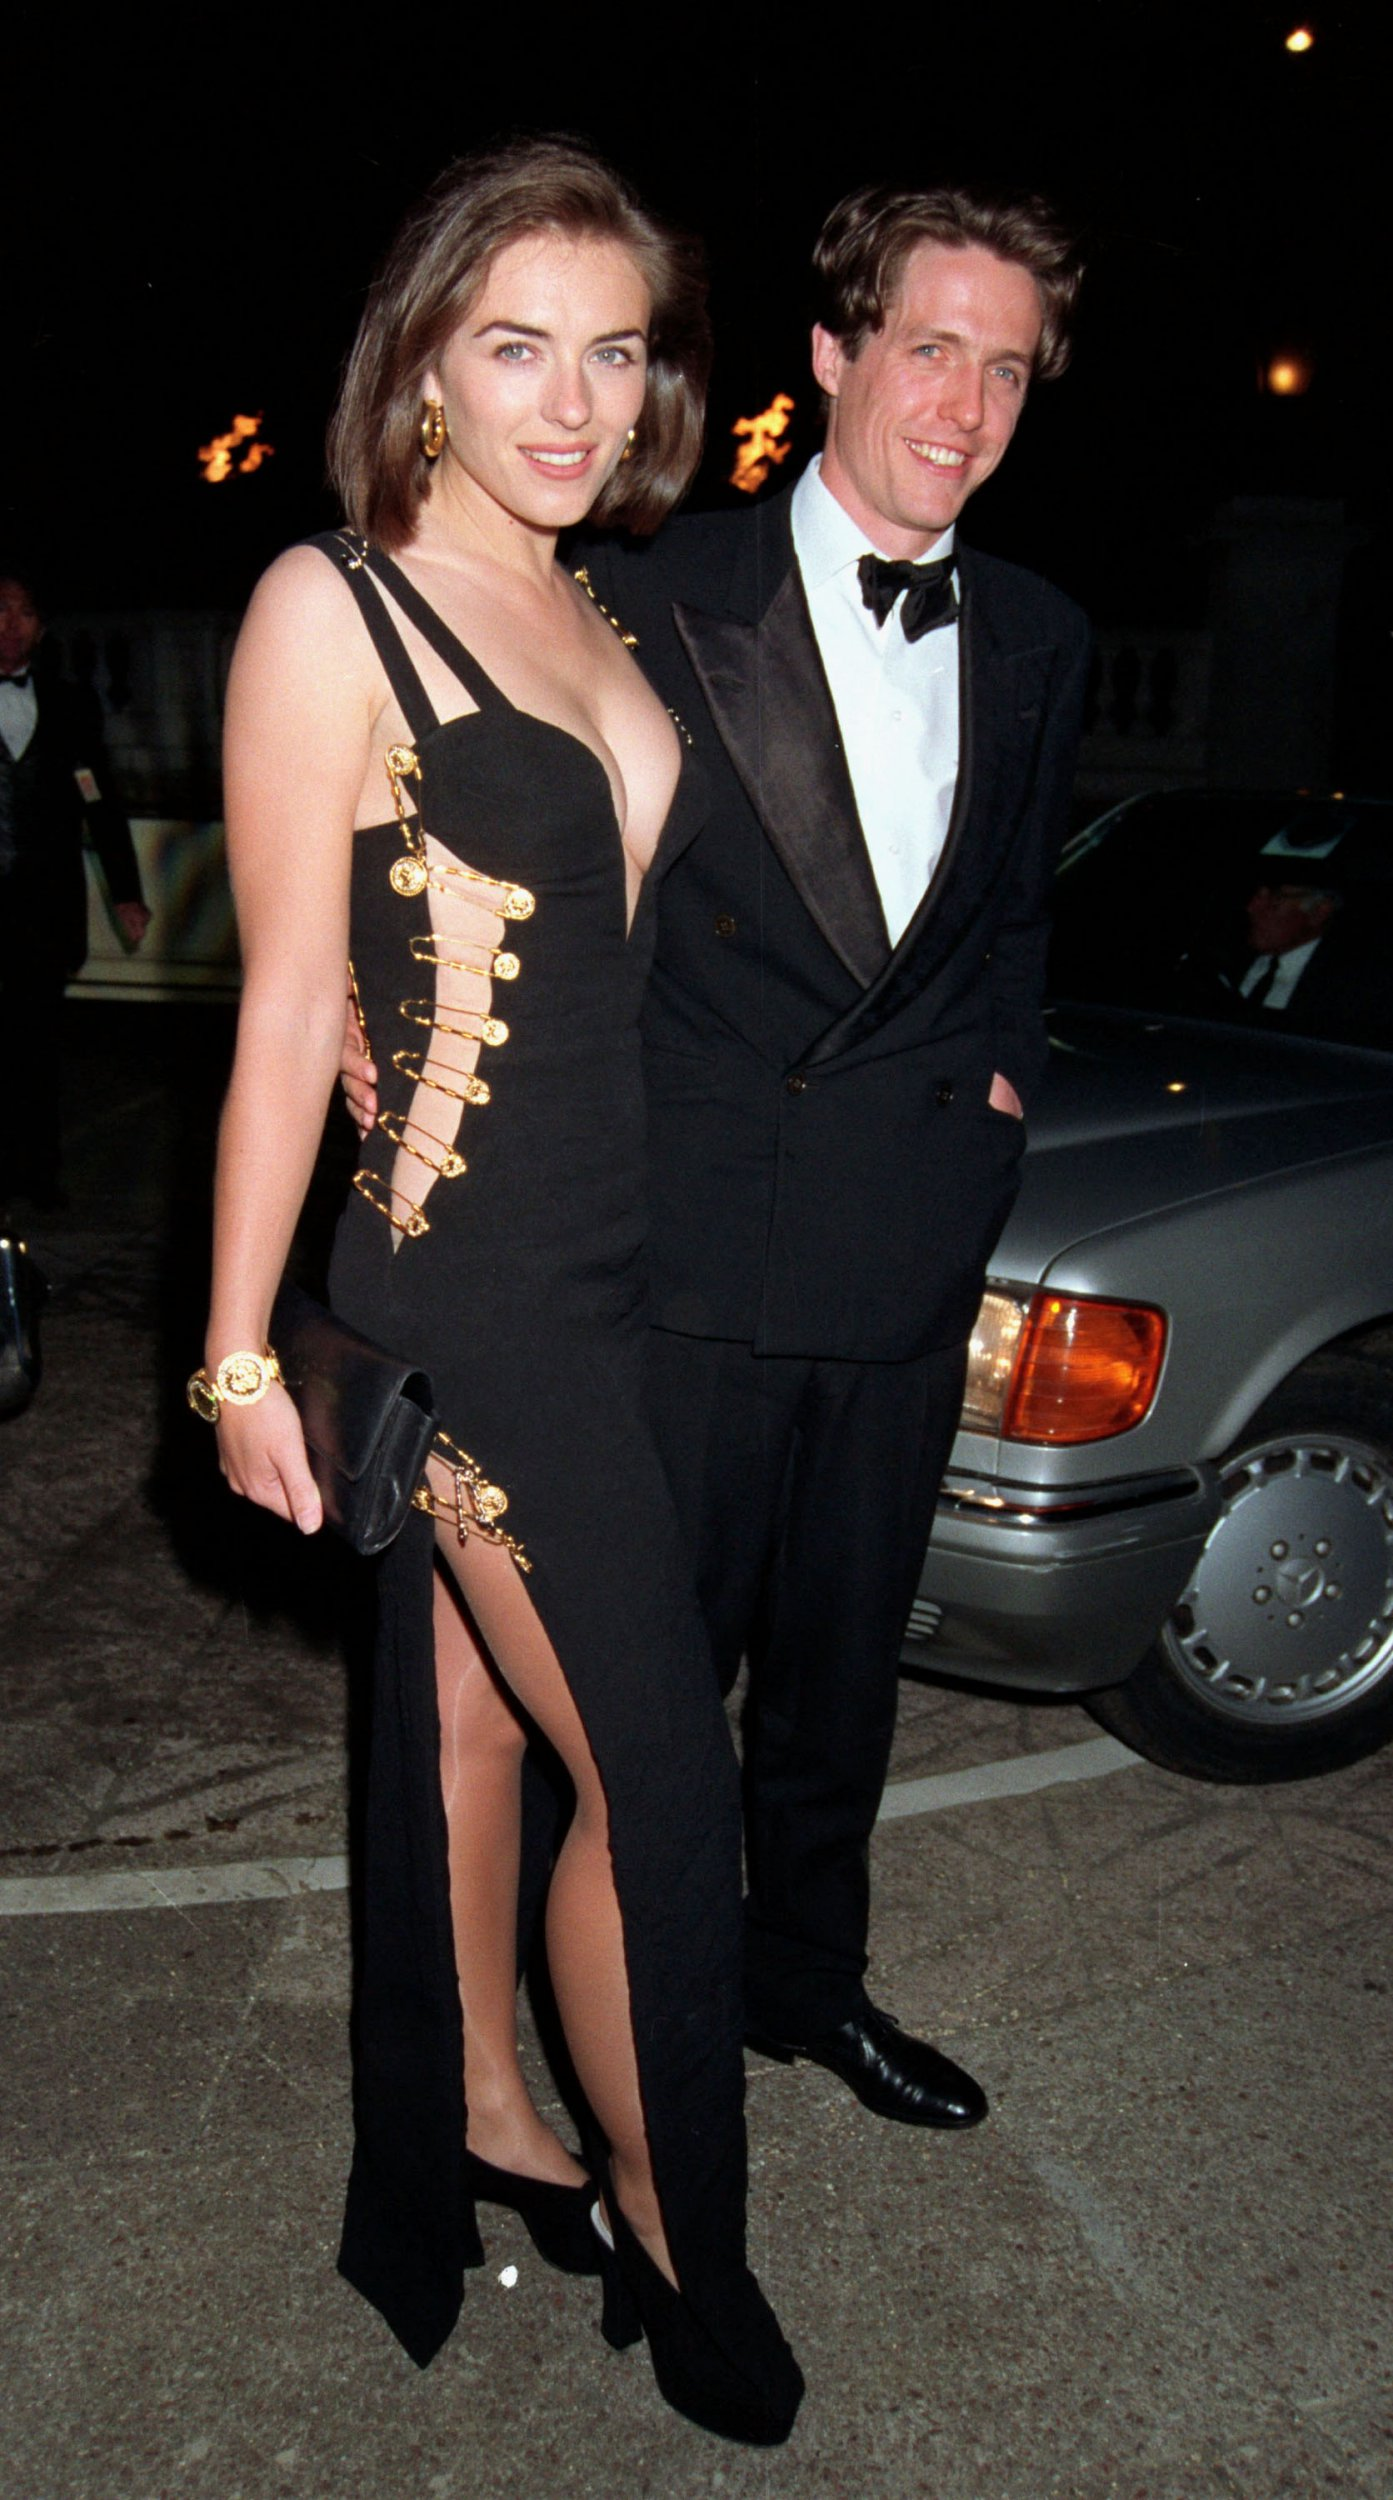 LONDON - MARCH 09: Actress Elizabeth Hurley wears a Giani Versace dress to the premiere of 'Four Weddings and A Funeral' held in Leicester Square on March 09, 1994 in London, England. (Photo by Dave Benett/Getty Images)